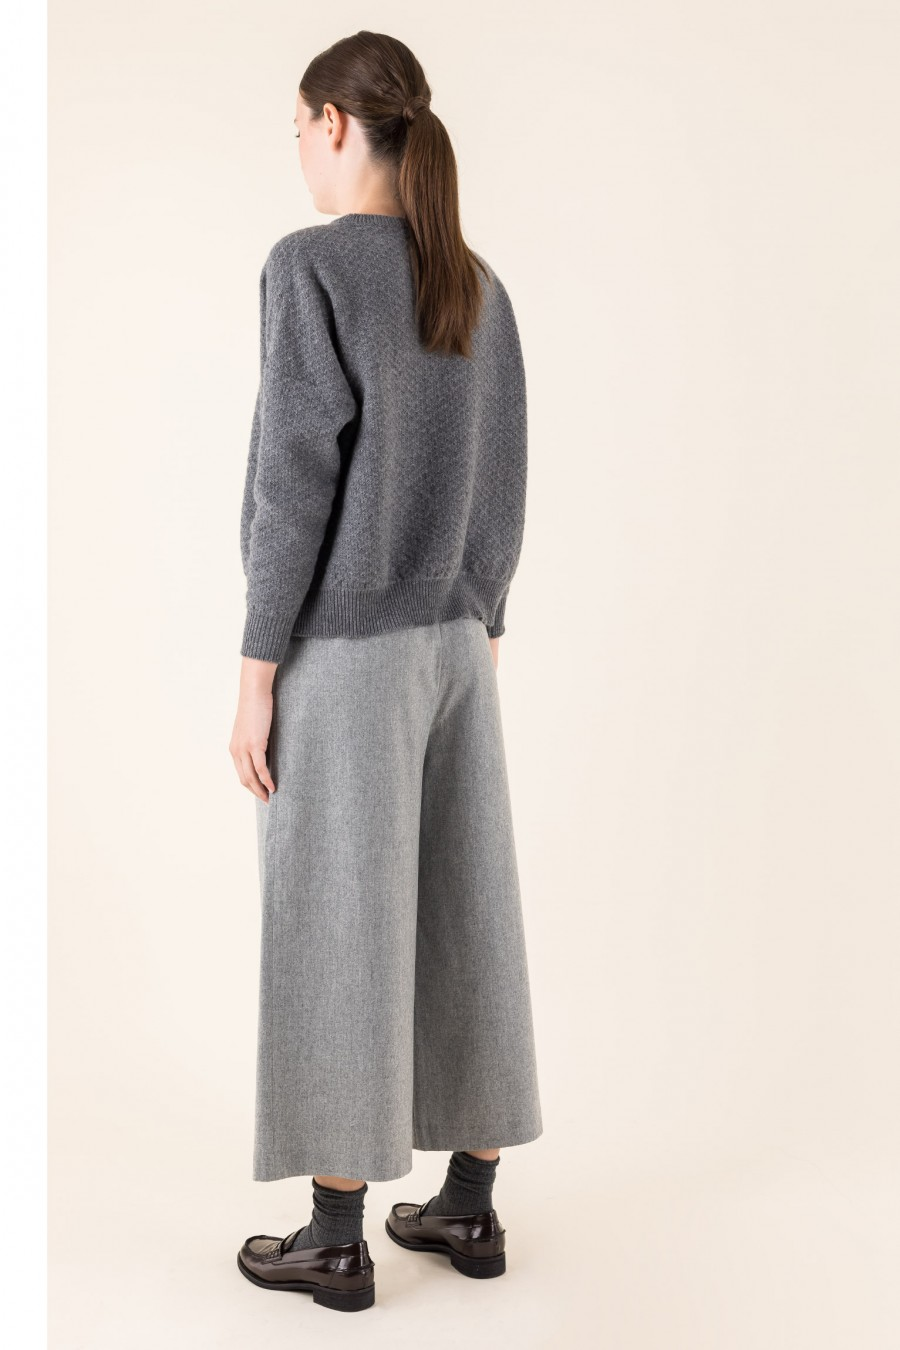 Grey over-fitting jumper